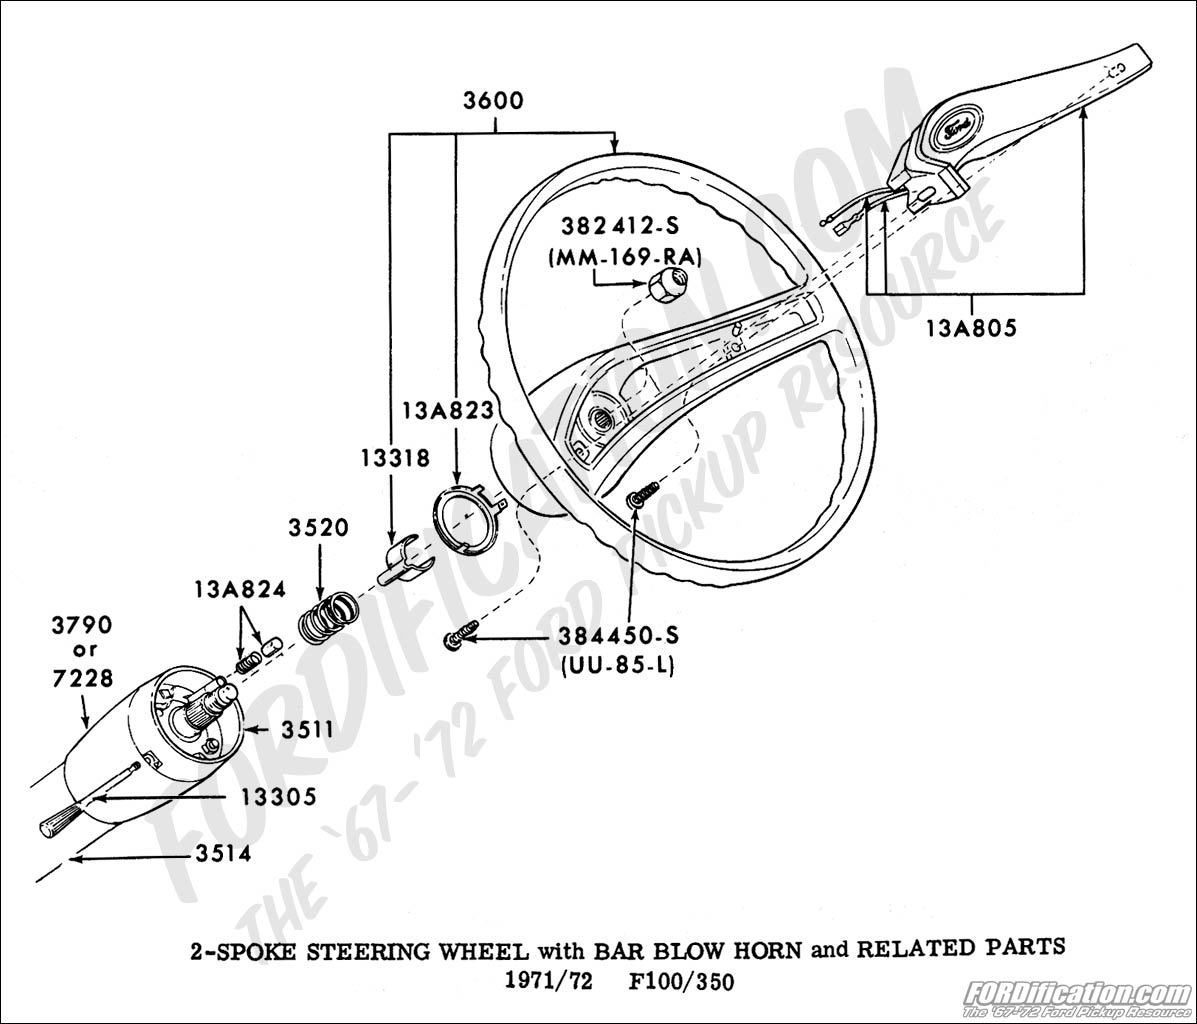 1972 Ford F100 Ignition Switch Wiring Diagram 45 1976 Chevy Truck Schematic Steeringwheel 7172 Technical Drawings And Schematics Section I 1971